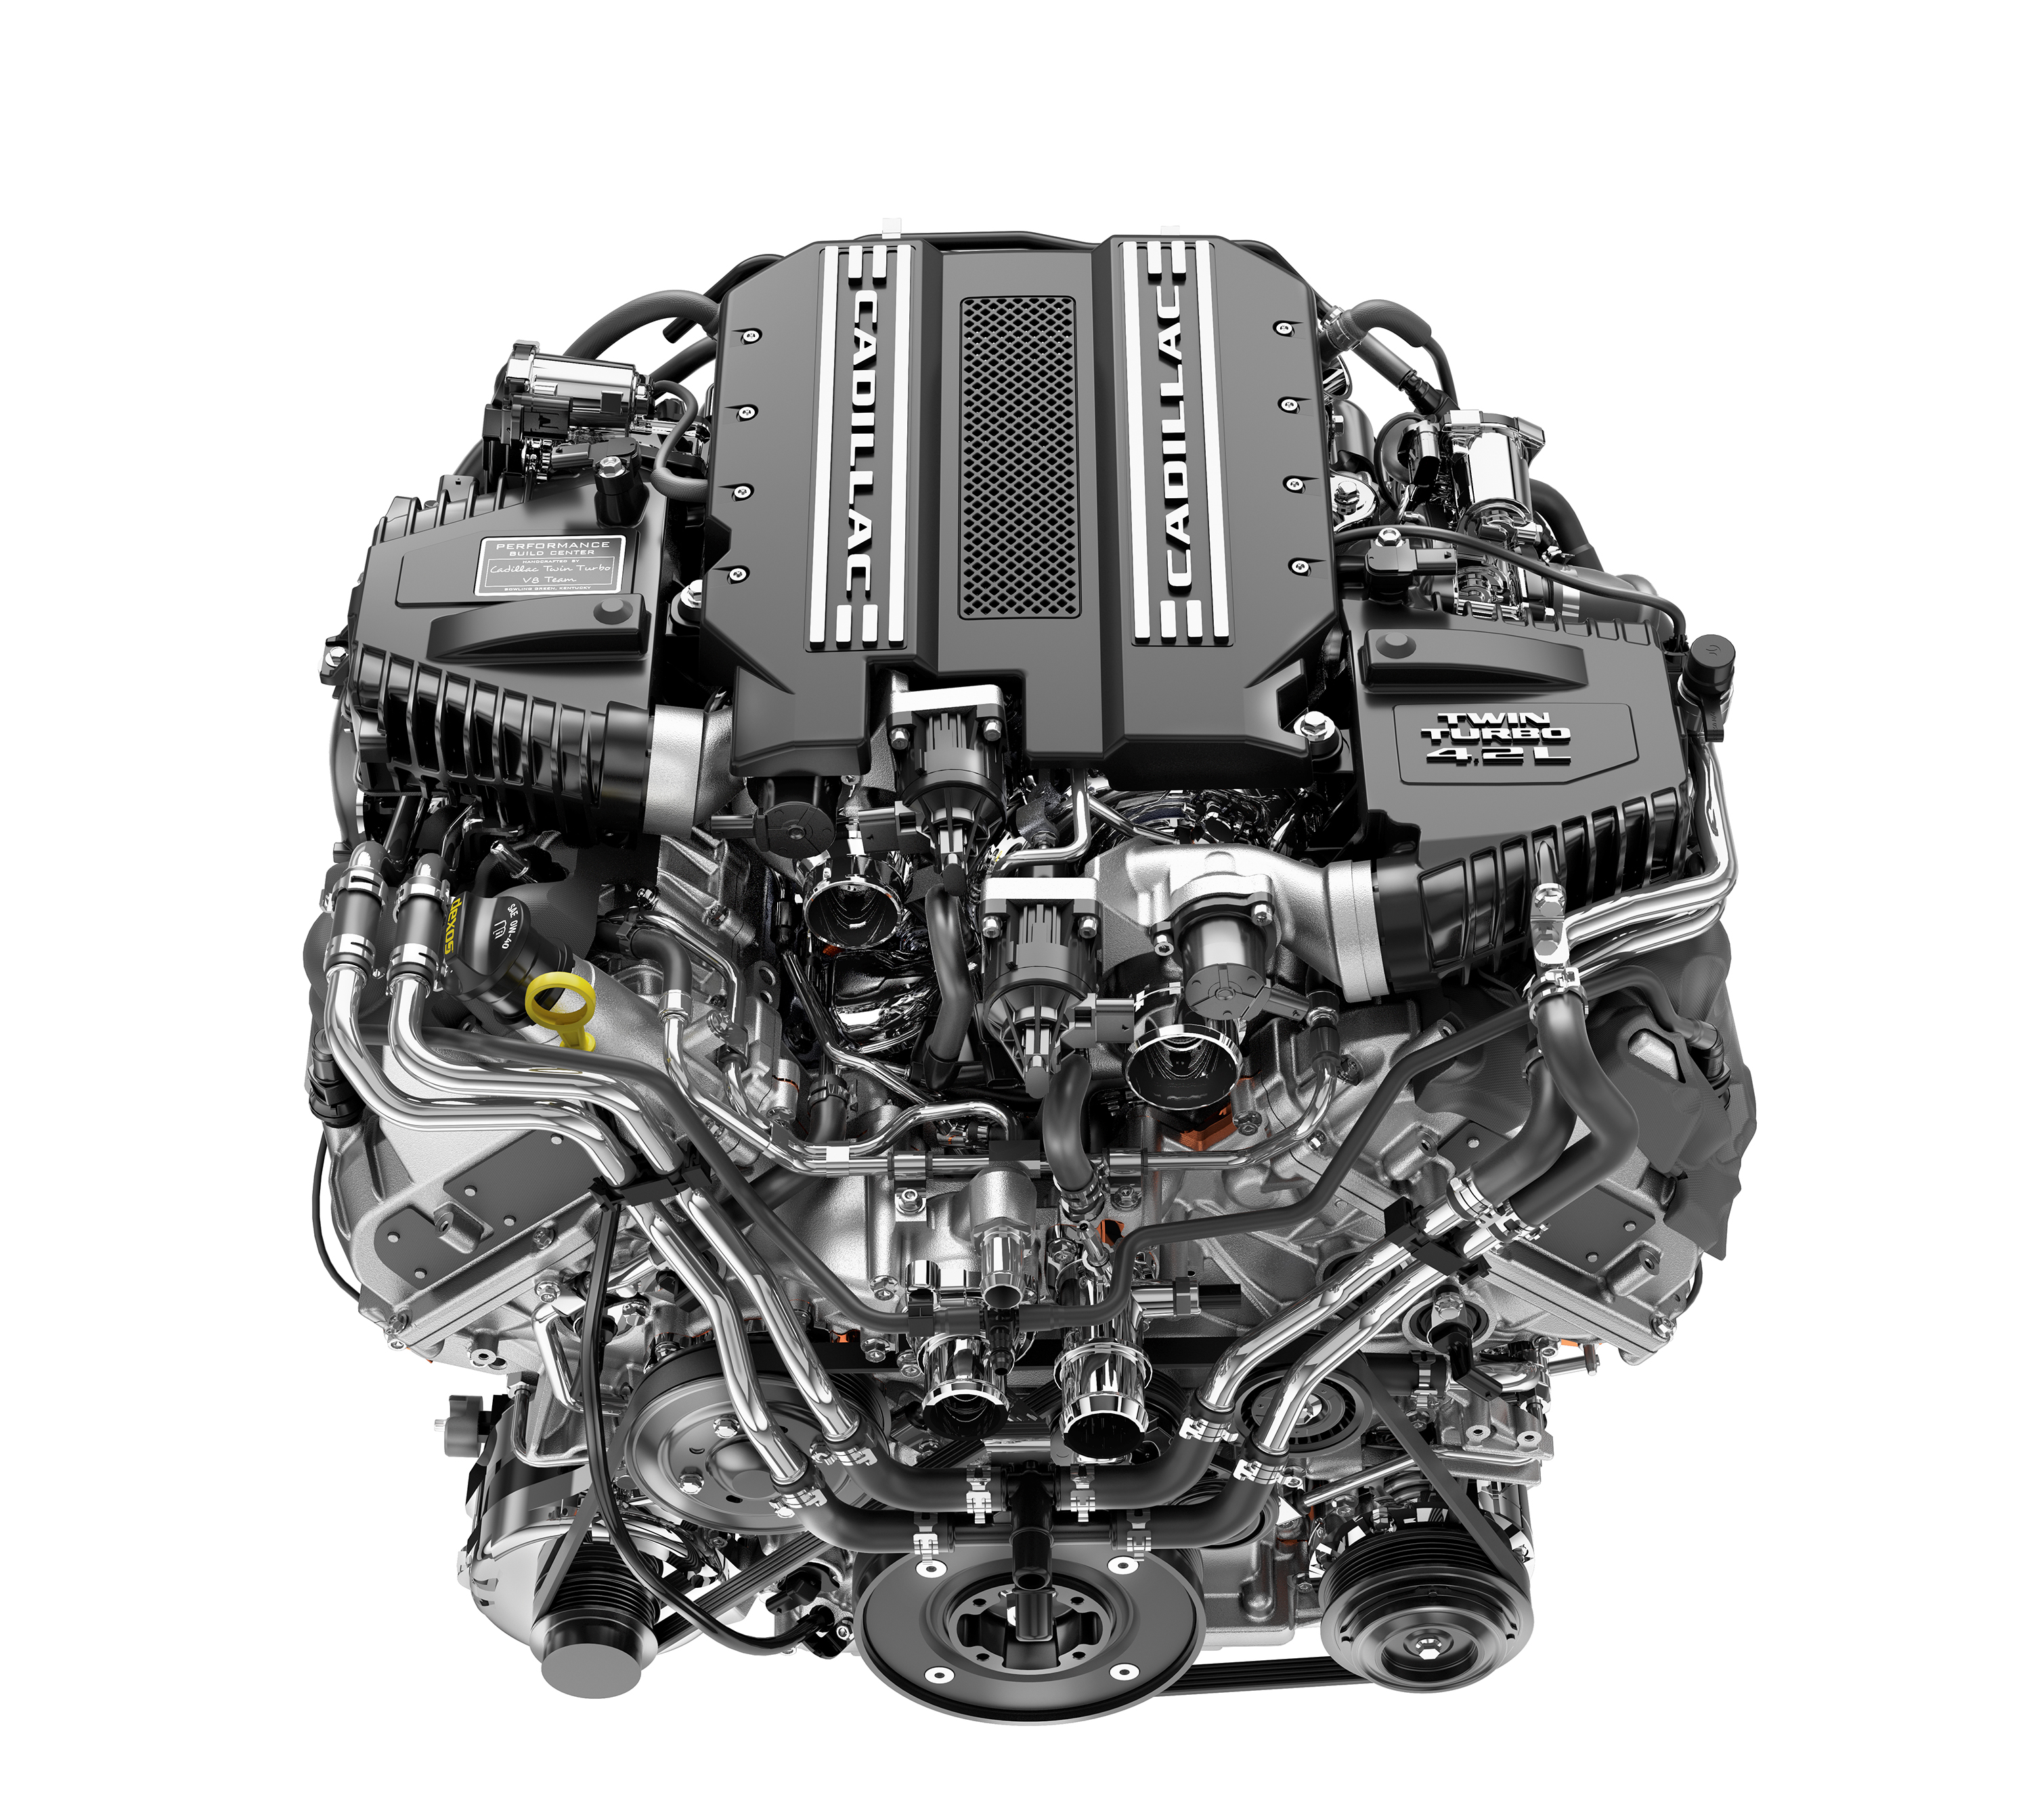 gm pages united states cadillac detail photos en media galleries engine content powertrain pressroom cts us engines